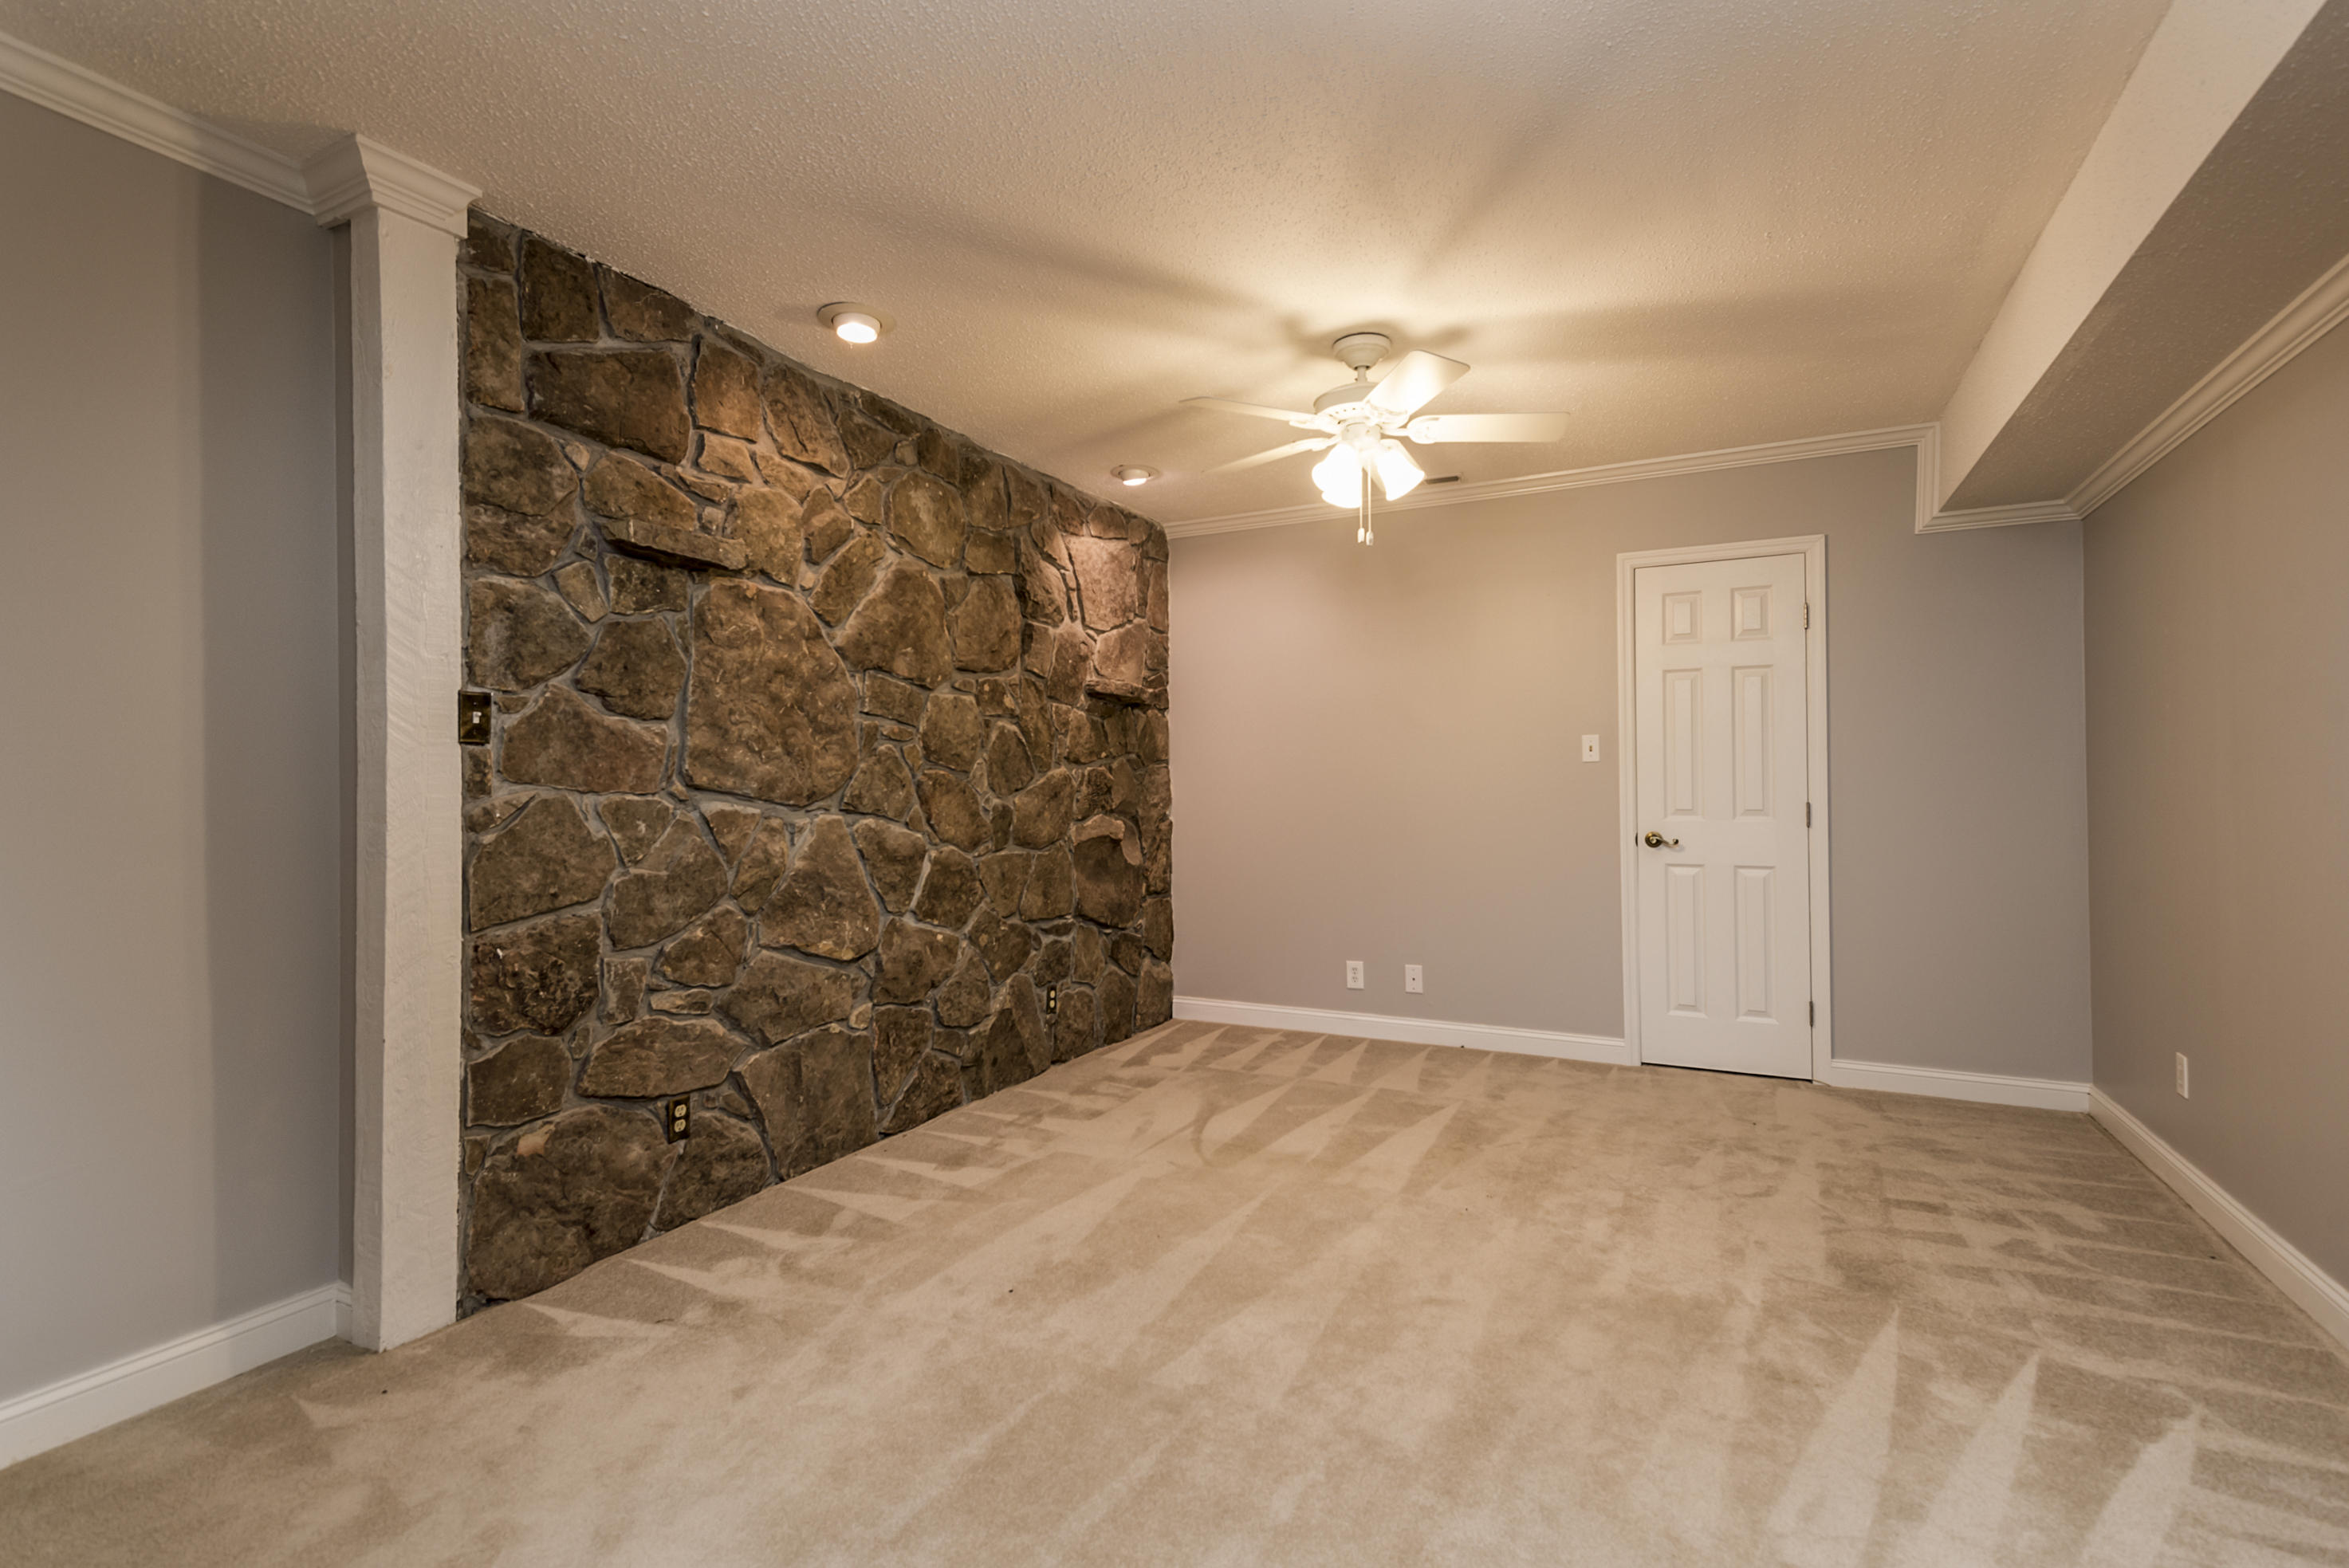 2105 Lakepoint Drive: